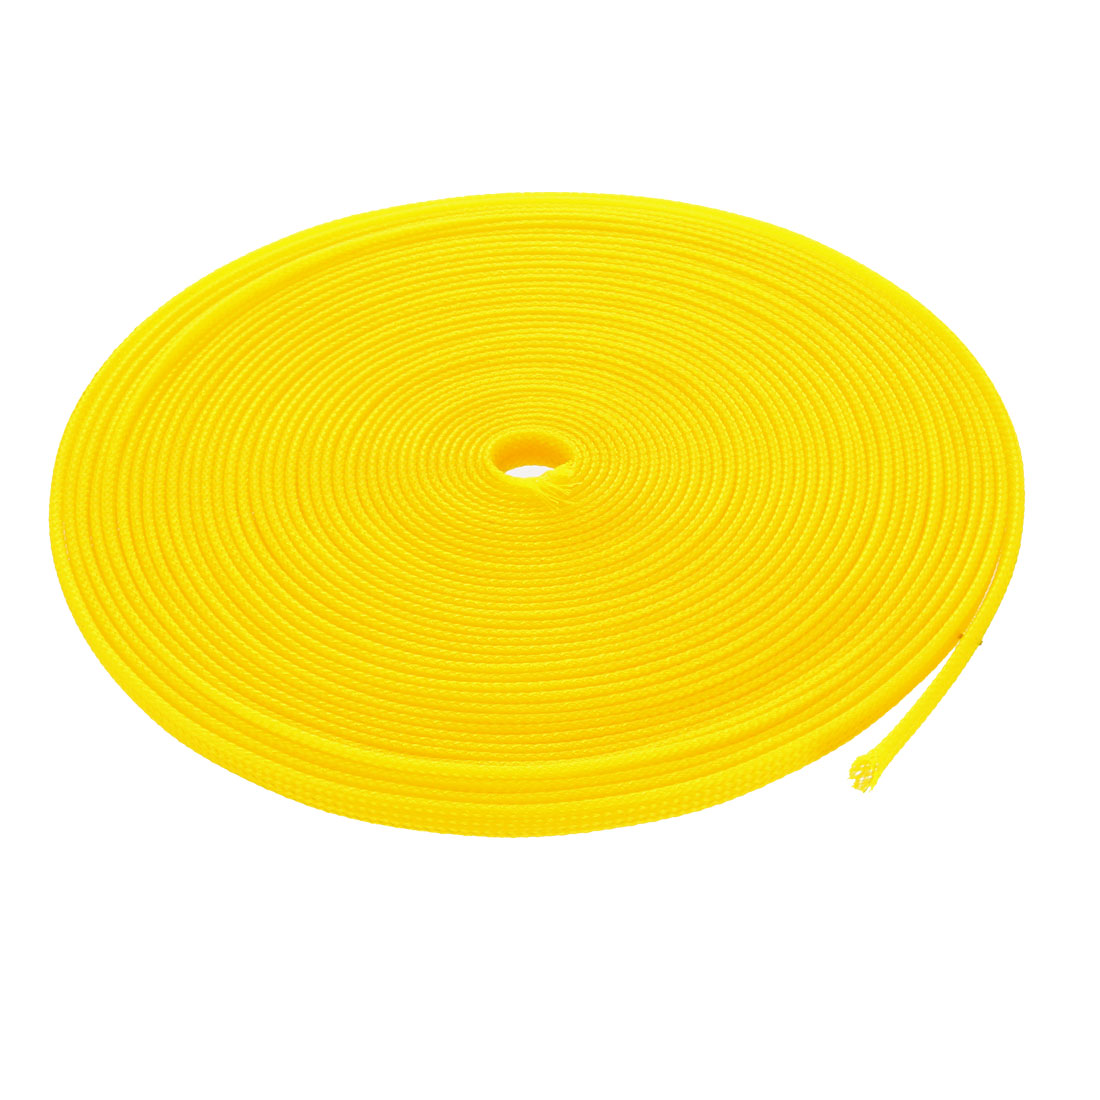 3mm Dia Tight Braided PET Expandable Sleeving Cable Wire Wrap Sheath Yellow 10M